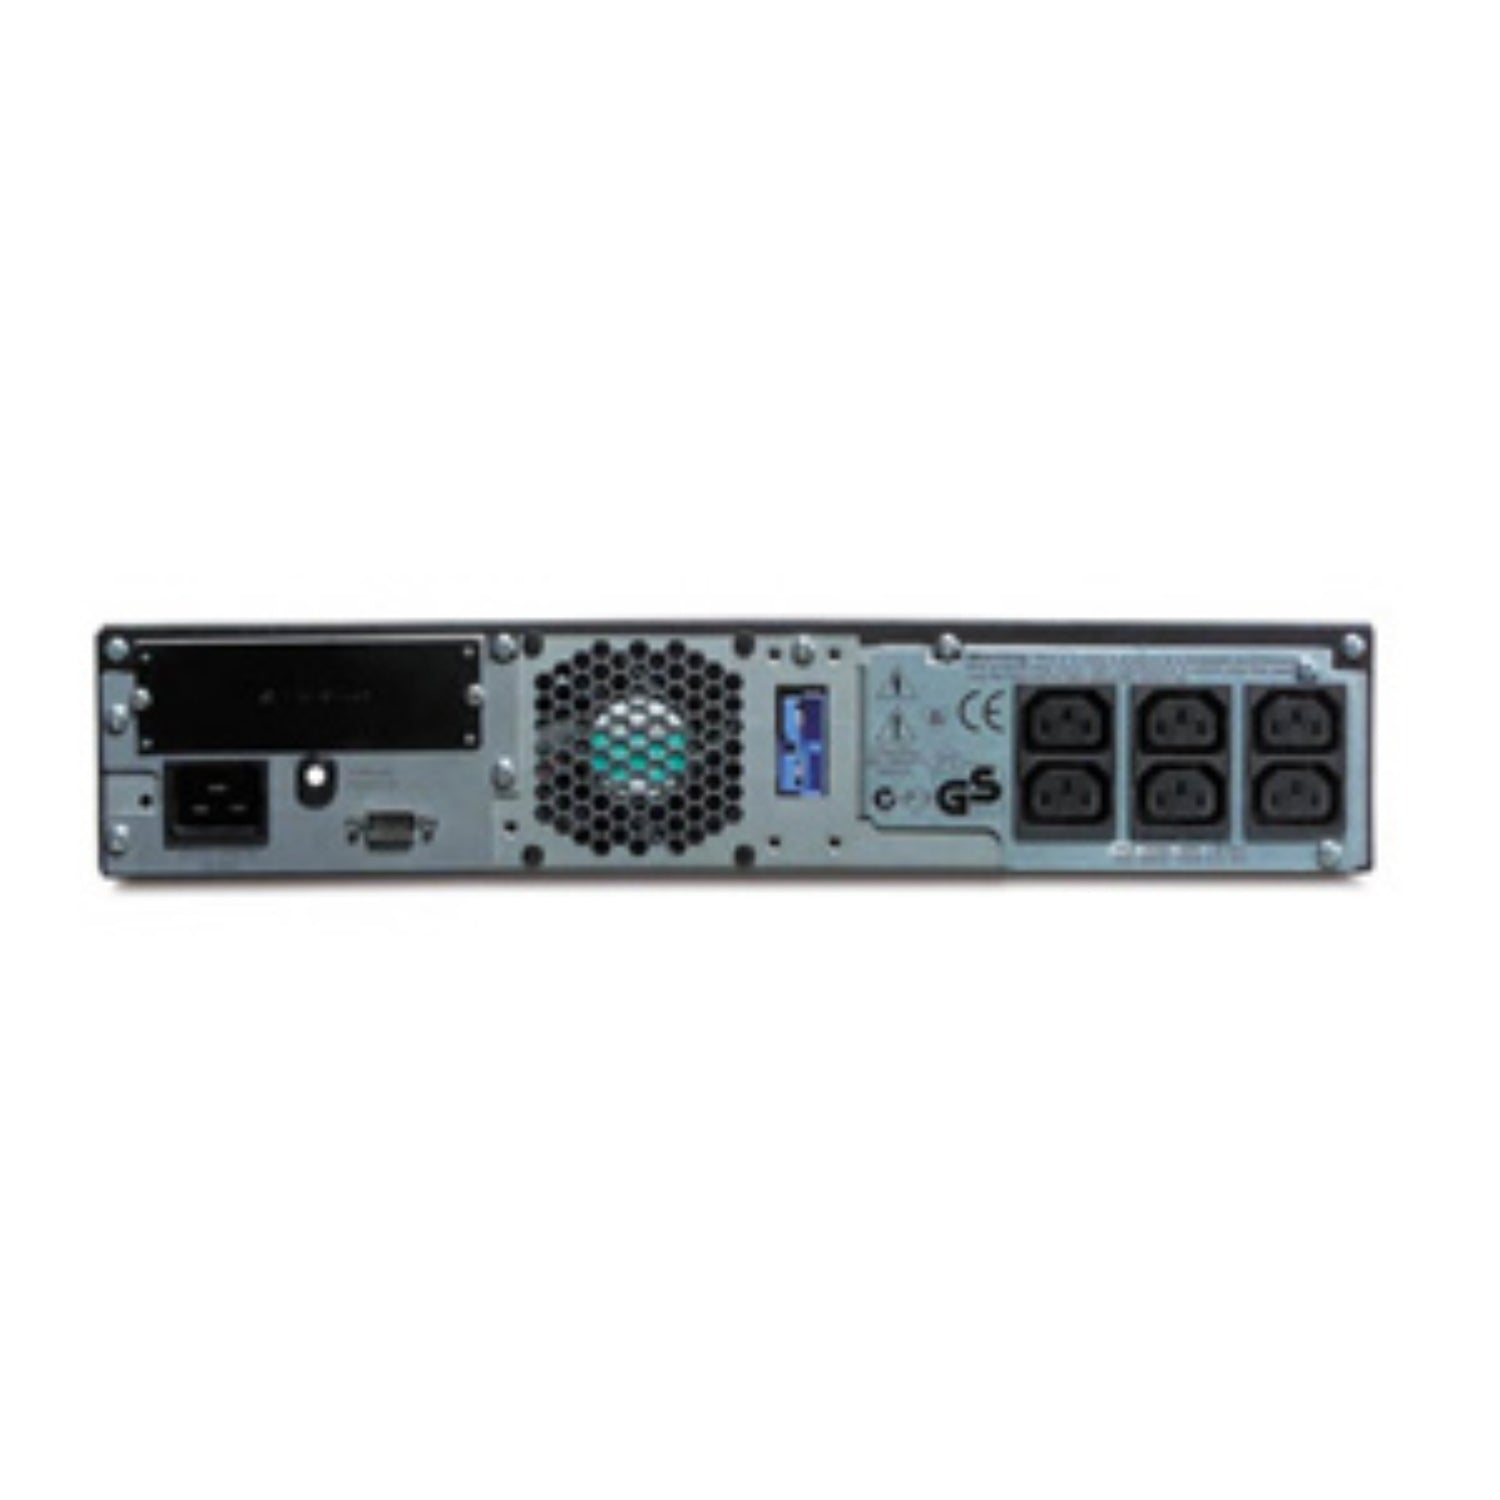 APC Smart-UPS RT 1000VA Rack Mount Online 230V SURT1000RMXLI